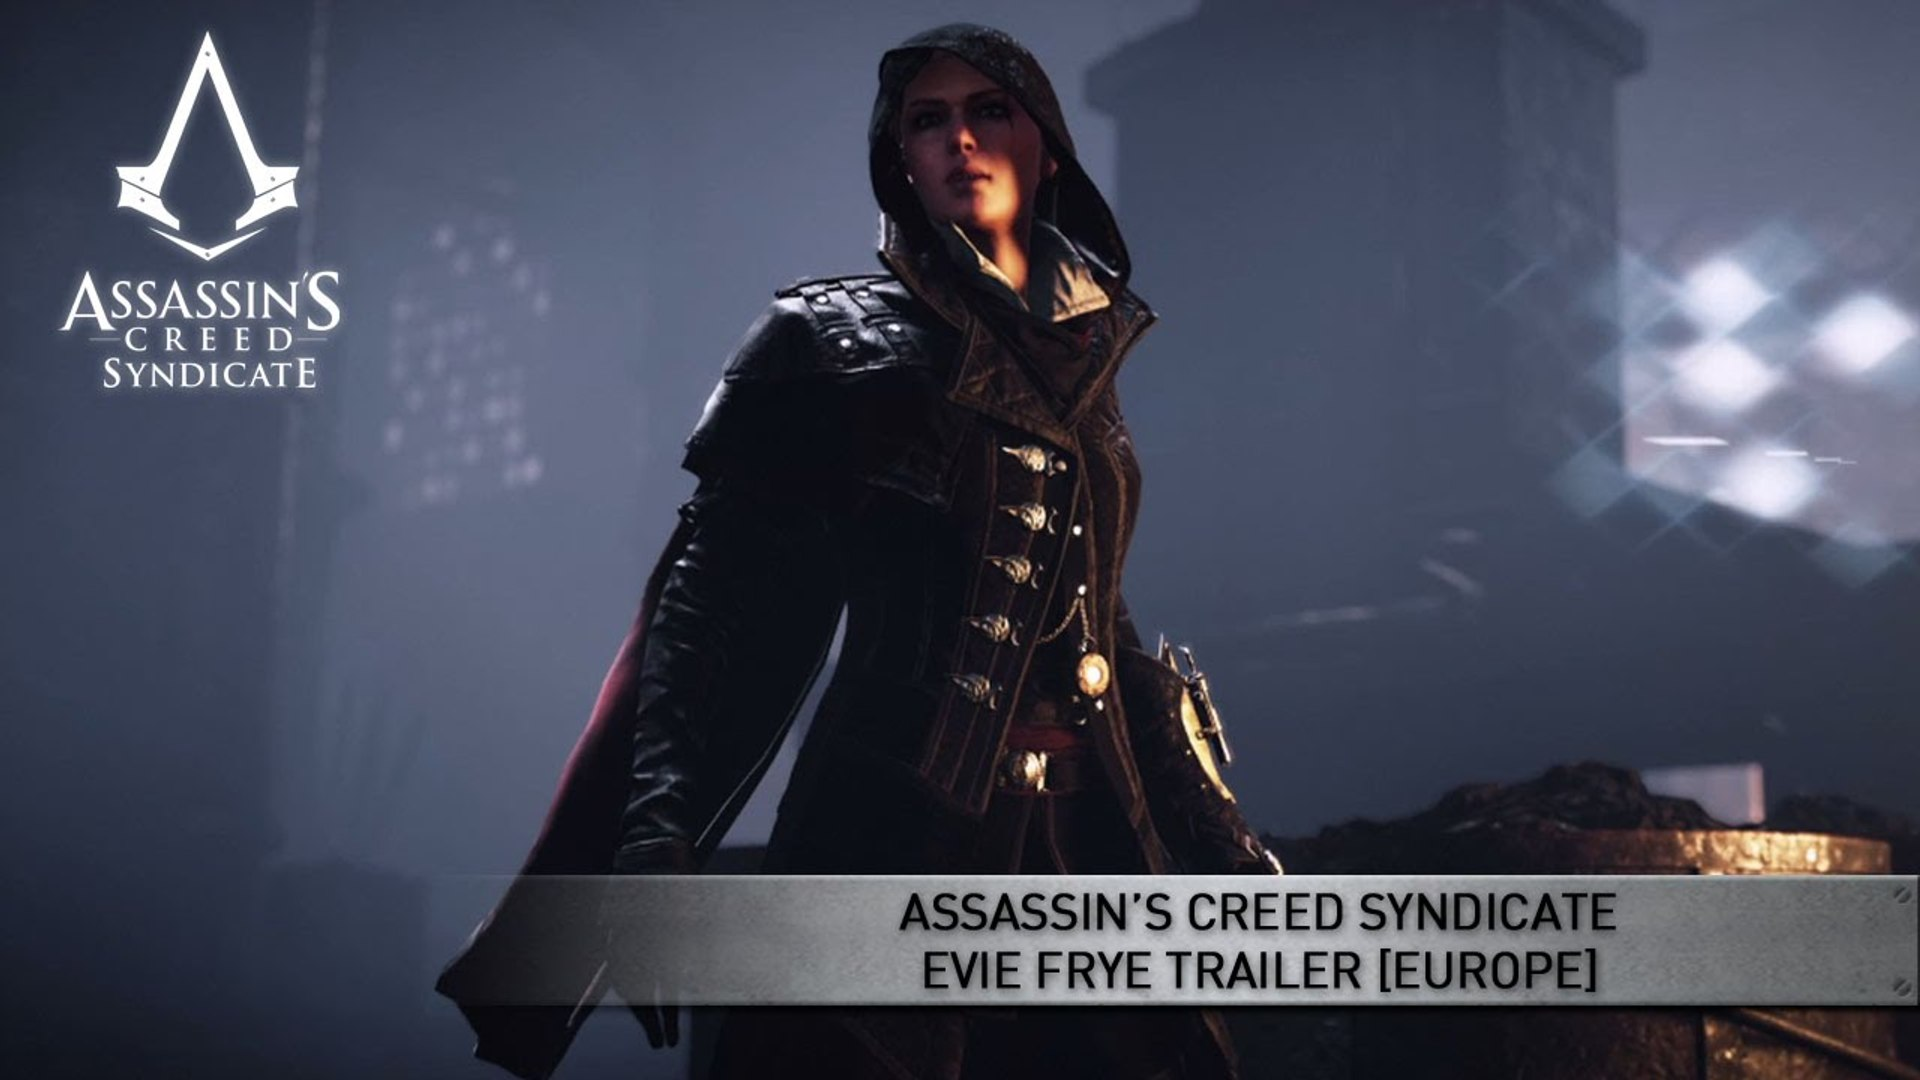 Evie Frye – See more ideas about frye, evie, aesthetic.